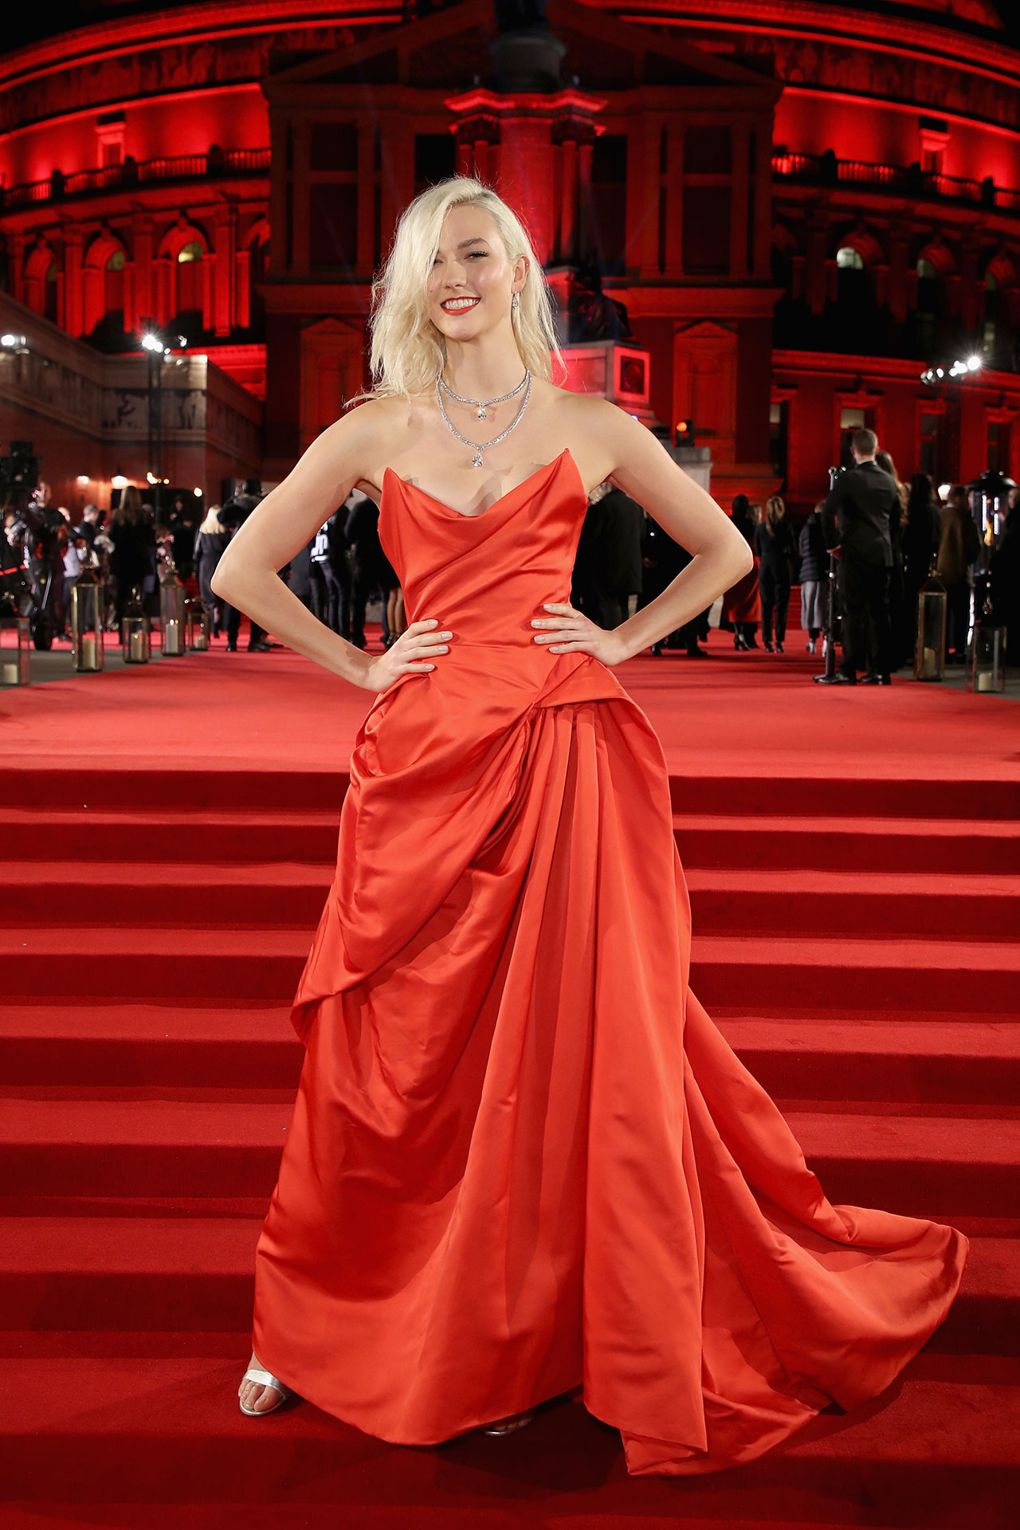 3b1022d2313 The Best Looks from the Red-Carpet Fashion Awards - BrandAlley Blog